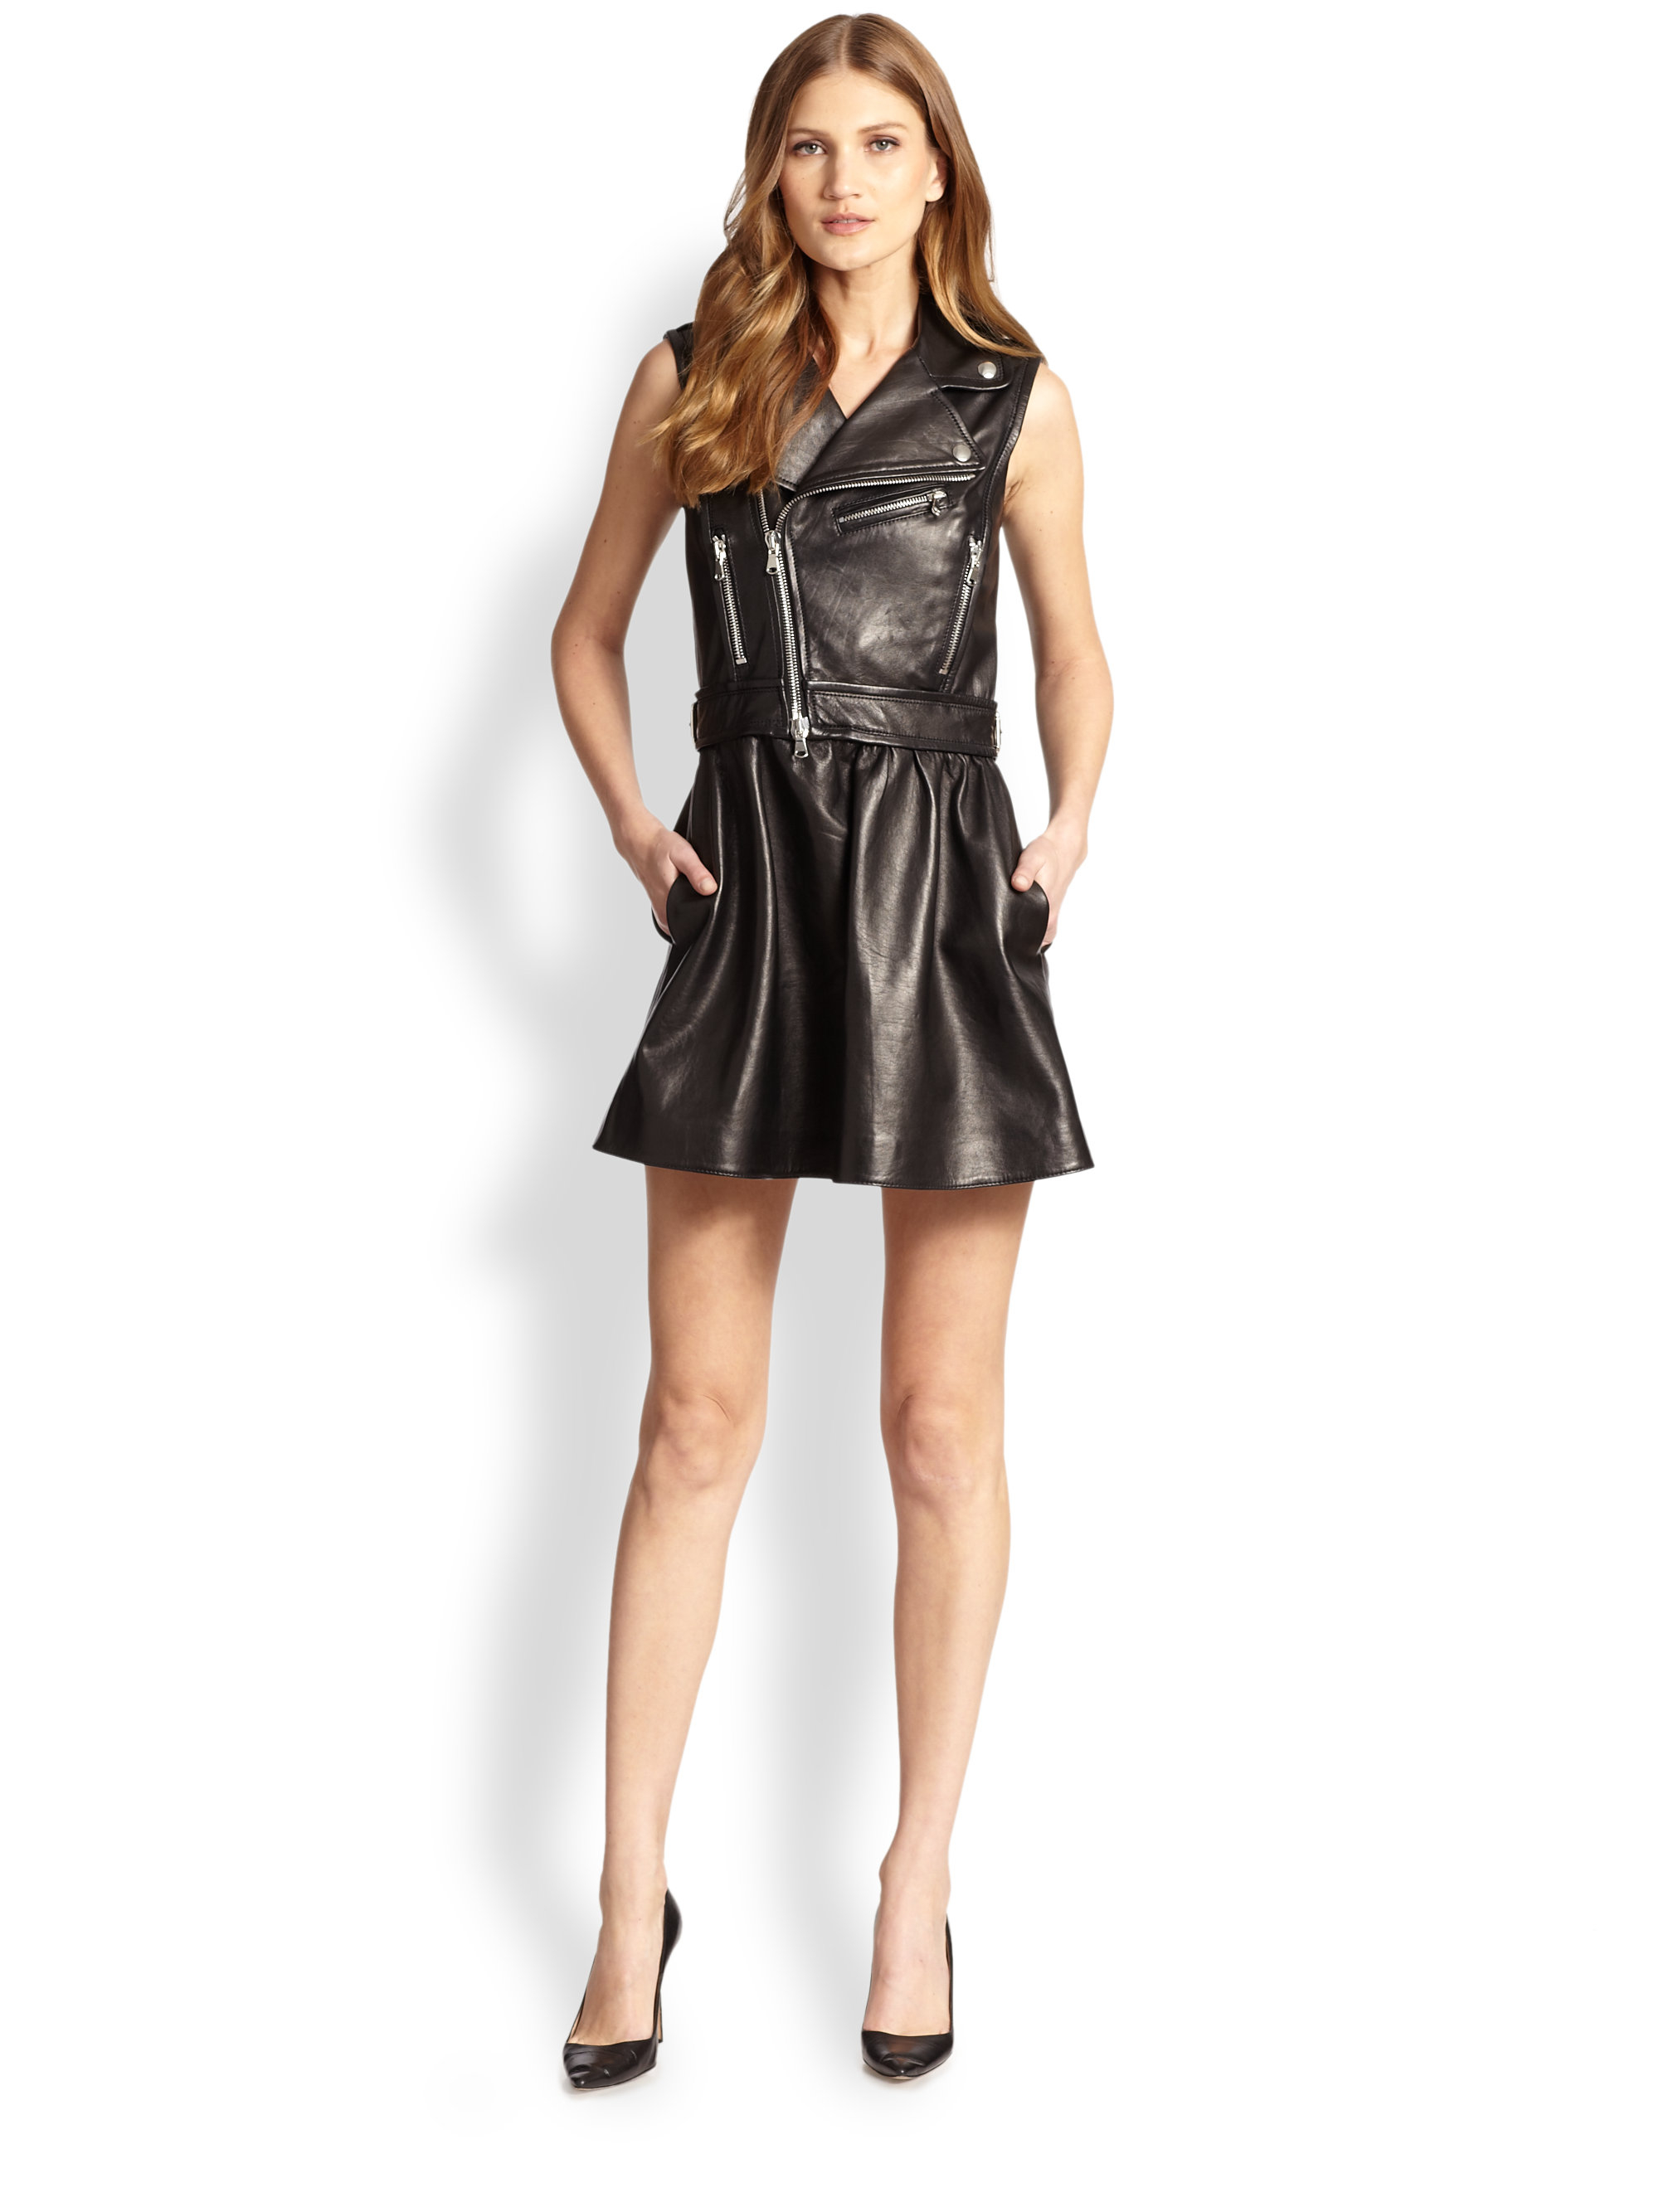 RED Valentino Leather Moto Jacket Dress in Black - Lyst